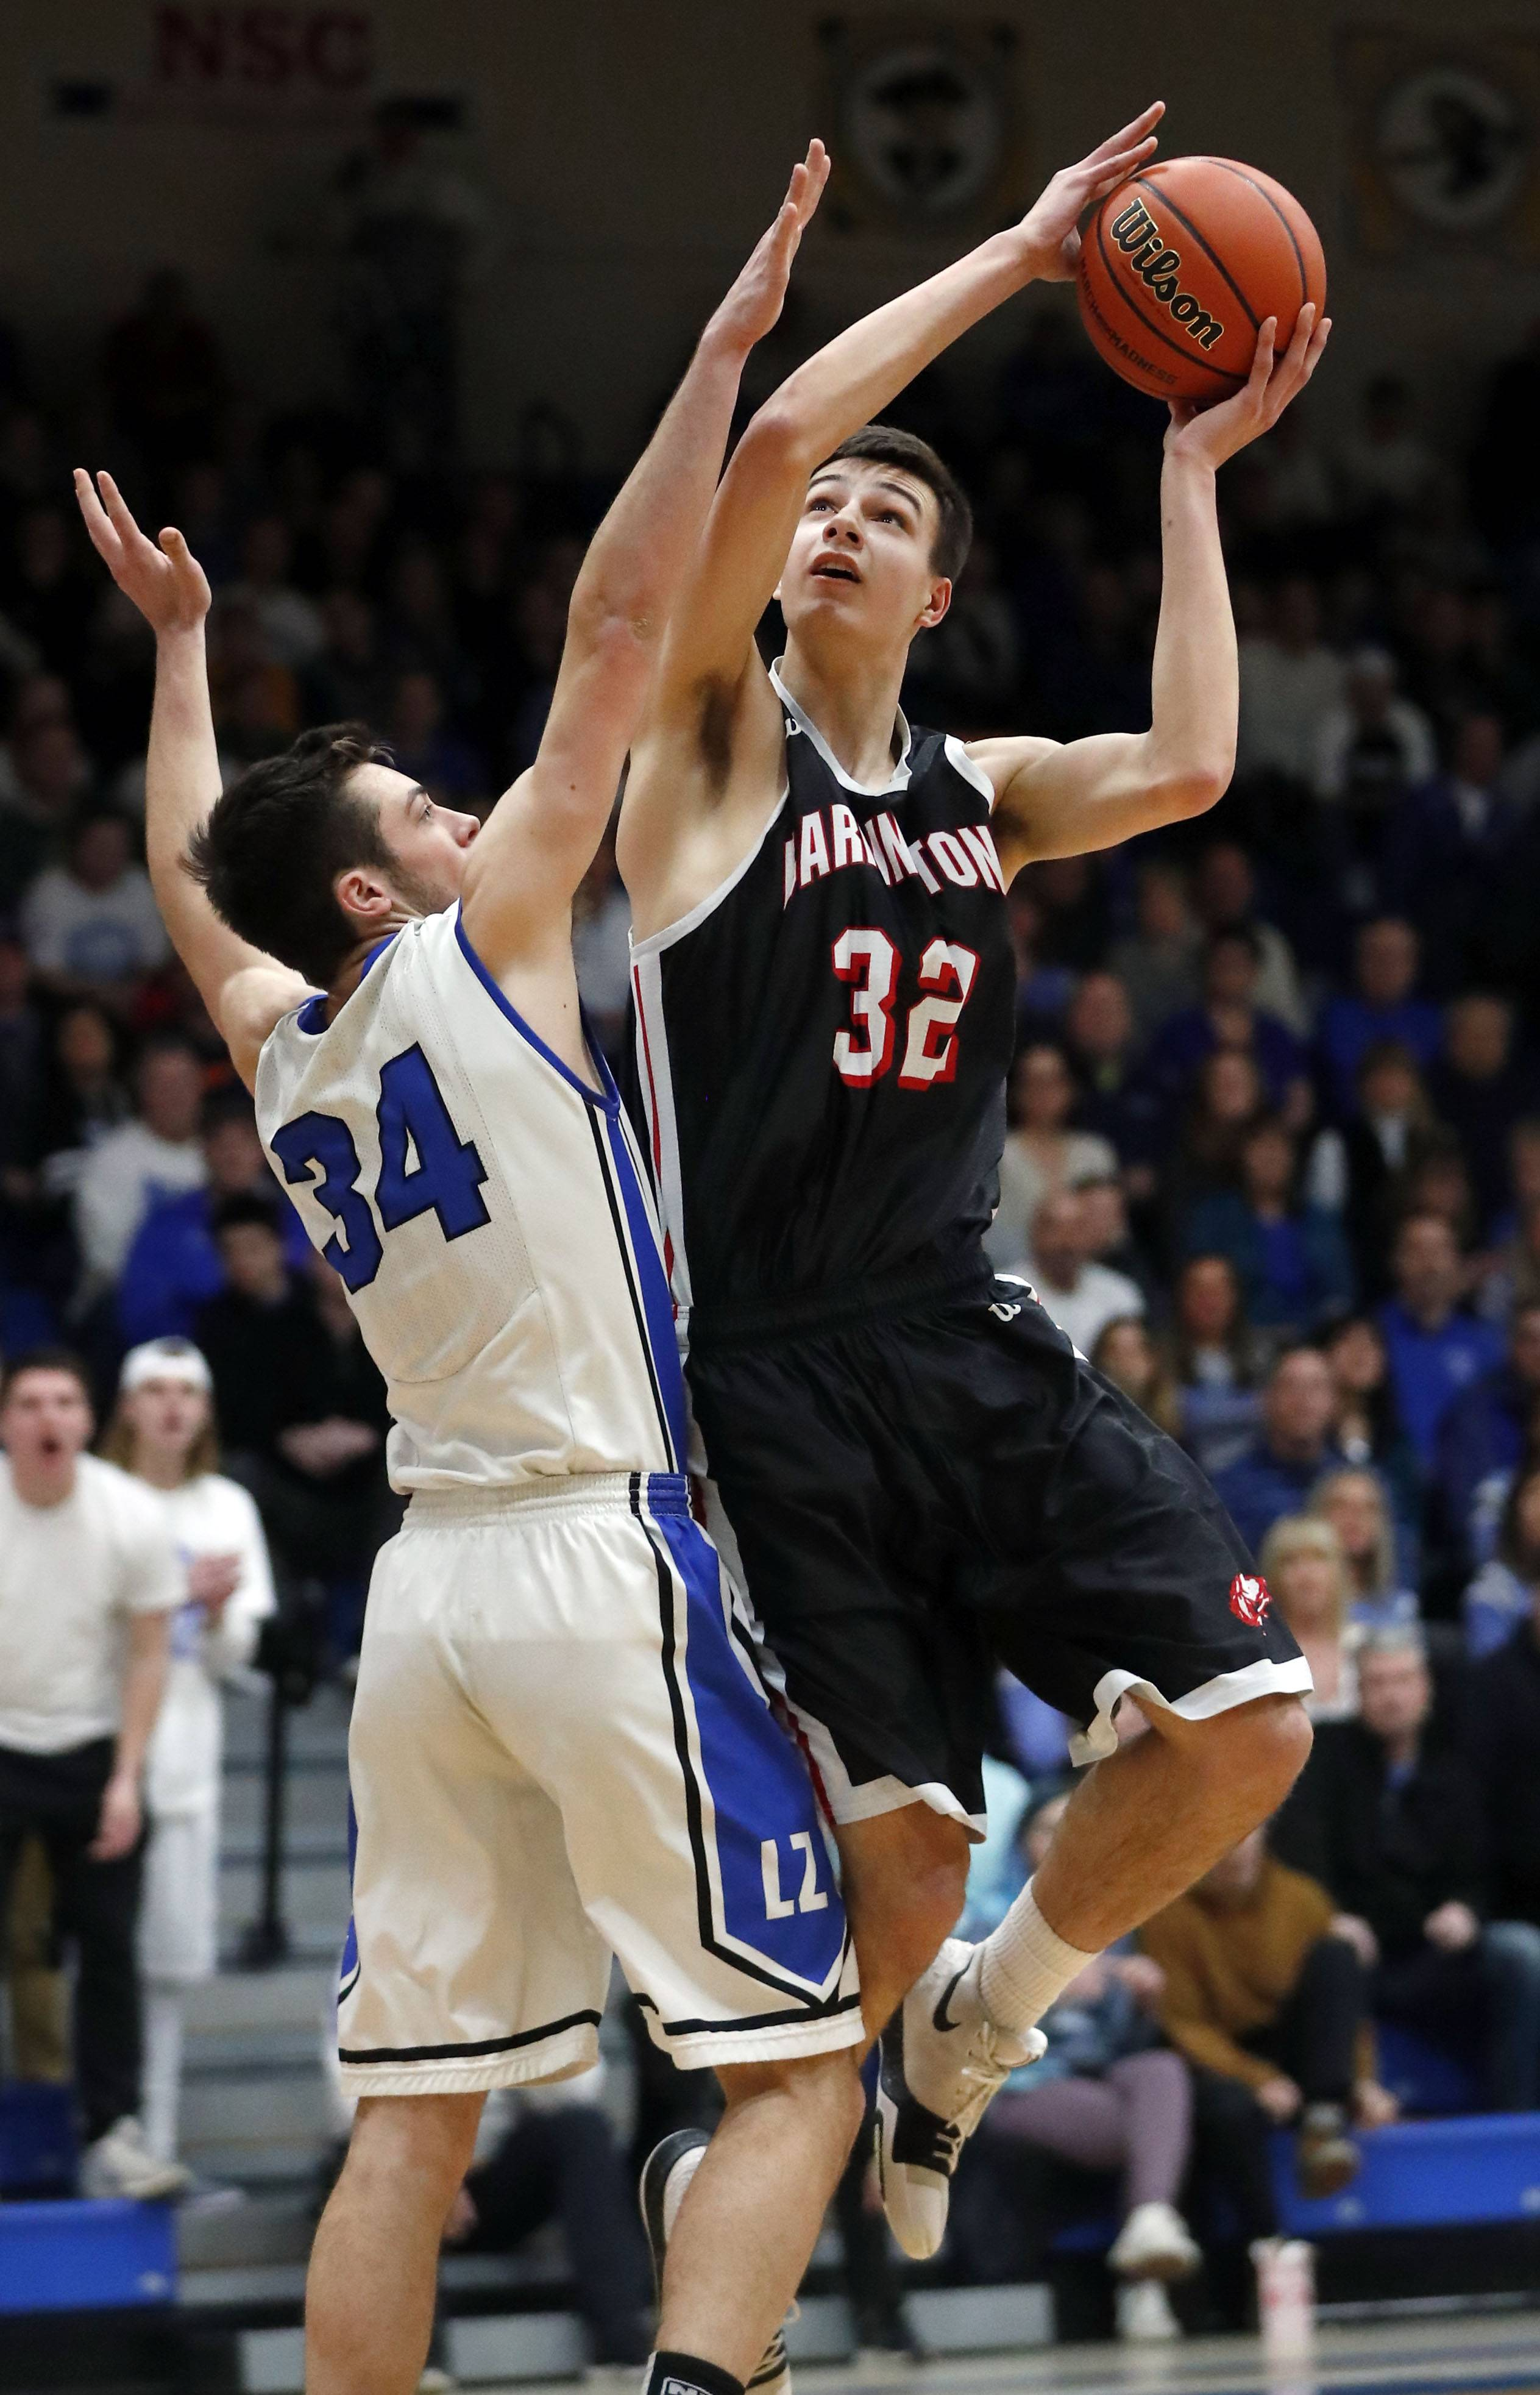 Barrington's Jack Reinhard (32) shoots over Lake Zurich's Ryan Kutsor during the Class 4A sectional final at Lake Zurich on Friday.